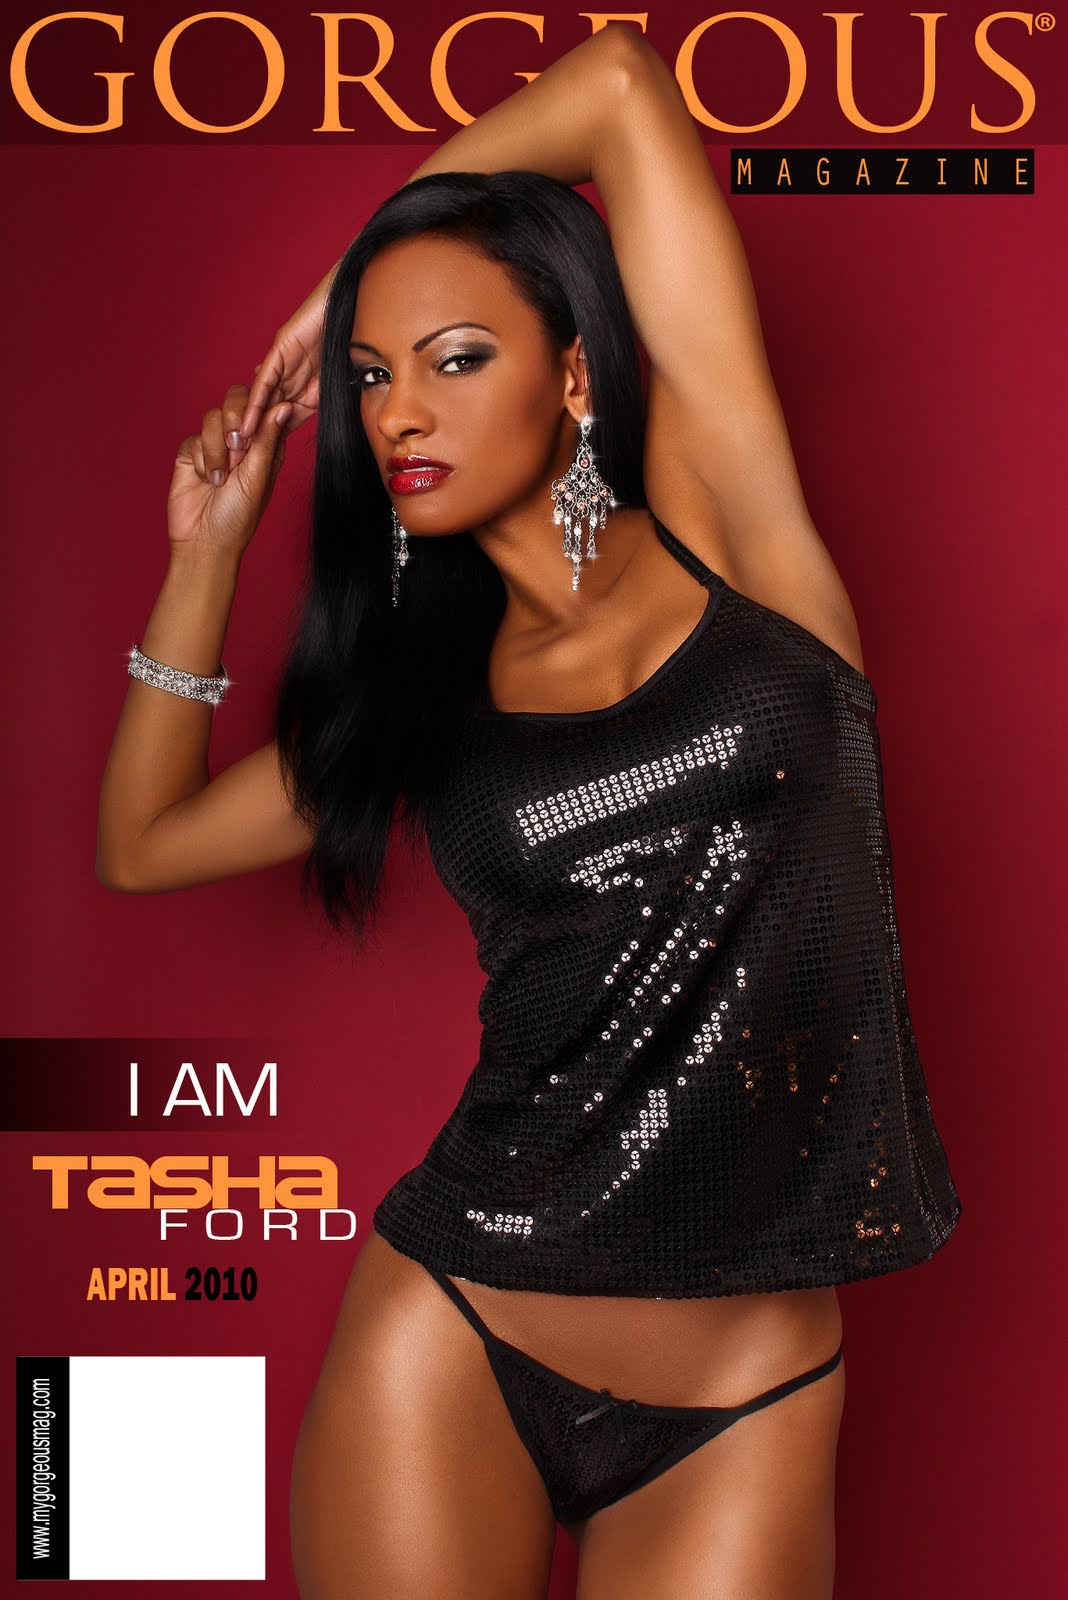 TASHA FORD Official Glam Girls